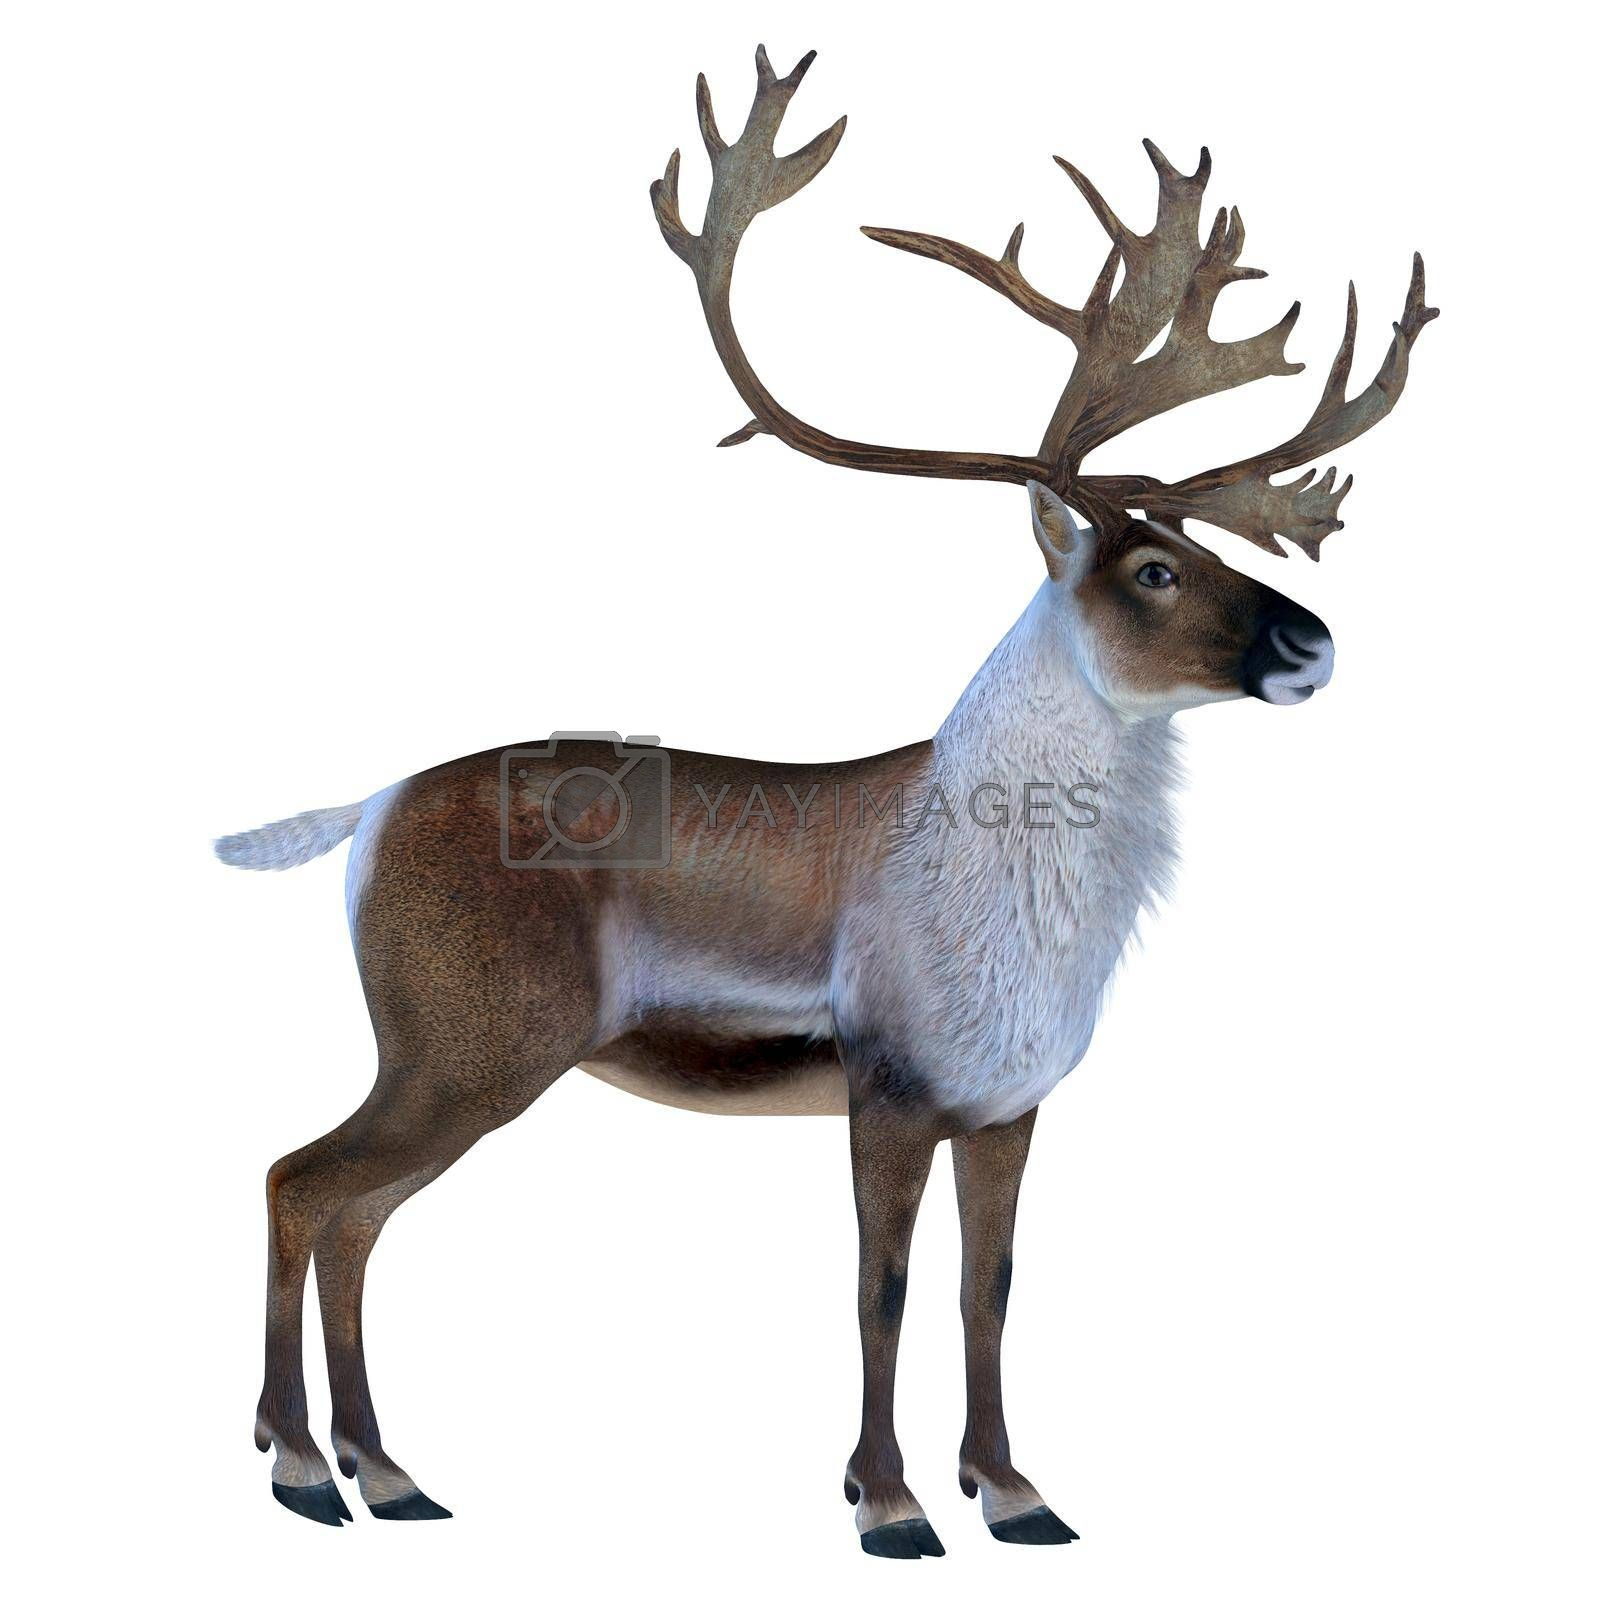 The Caribou deer also called a reindeer lives in the northern regions of Europe, Siberia and North America.